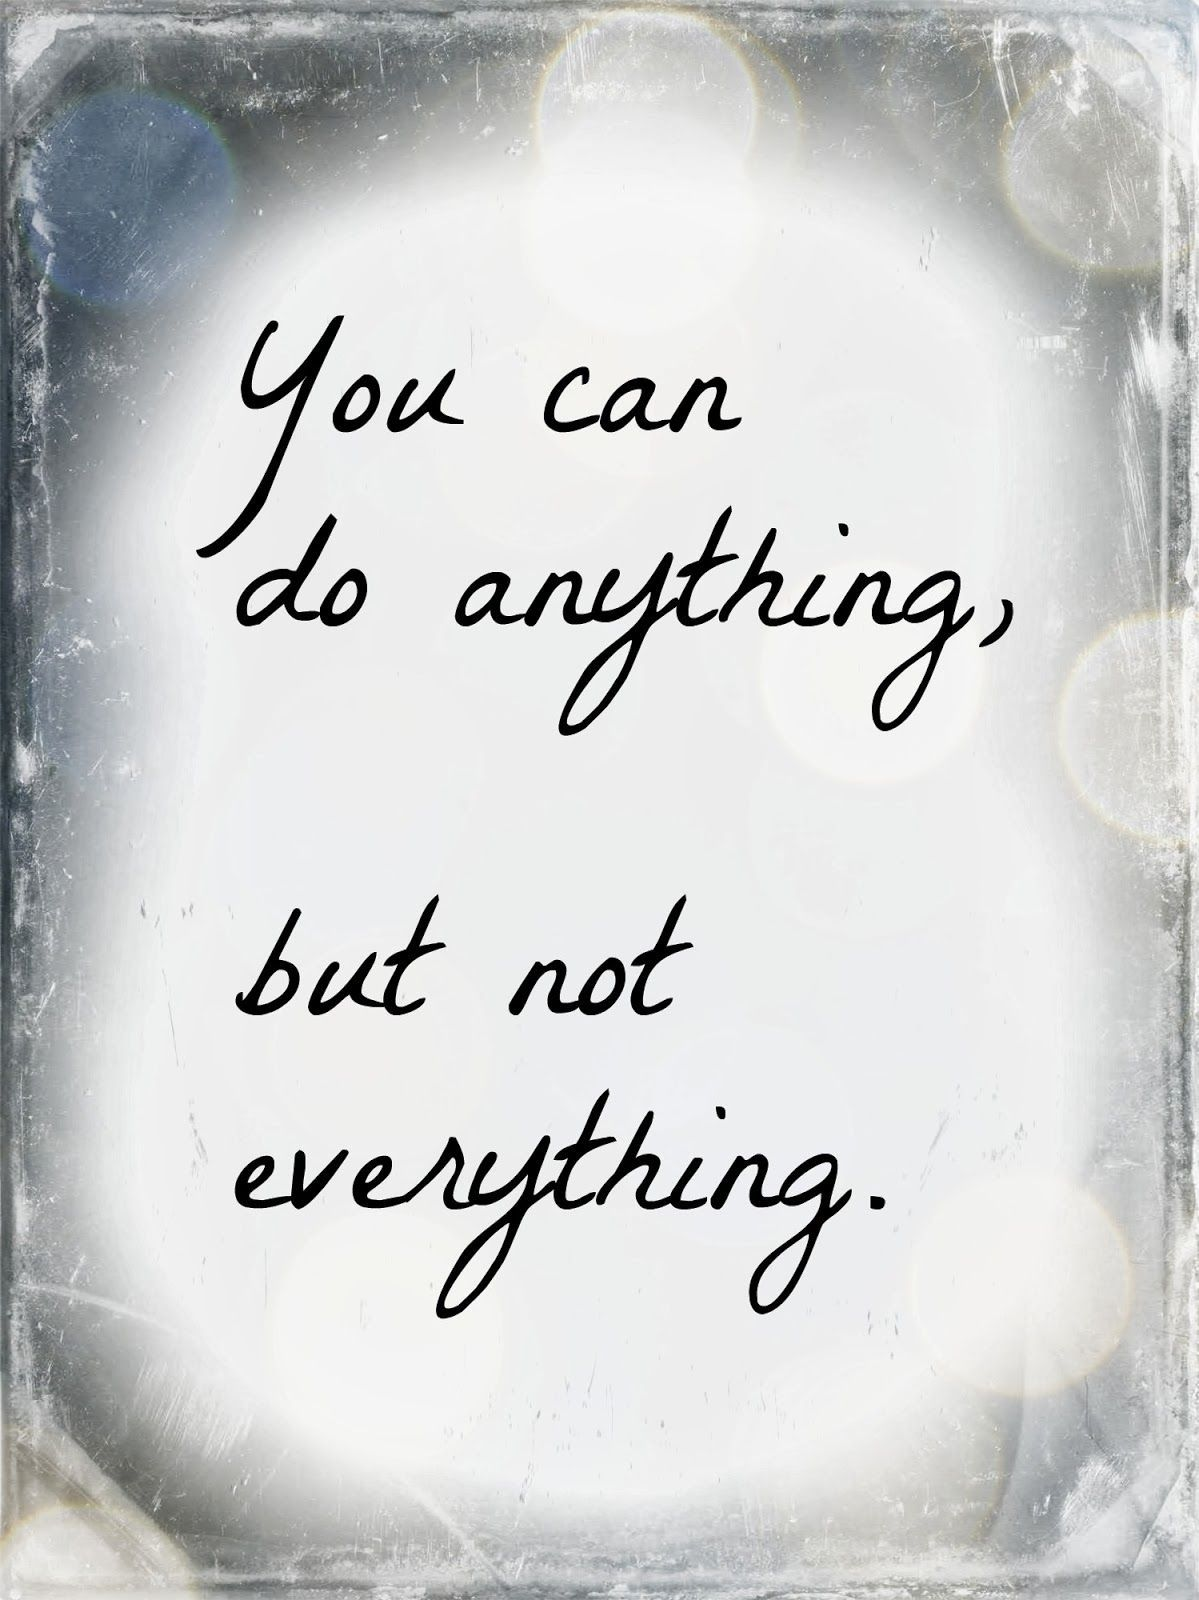 You can do anything but not everything. … Creativity